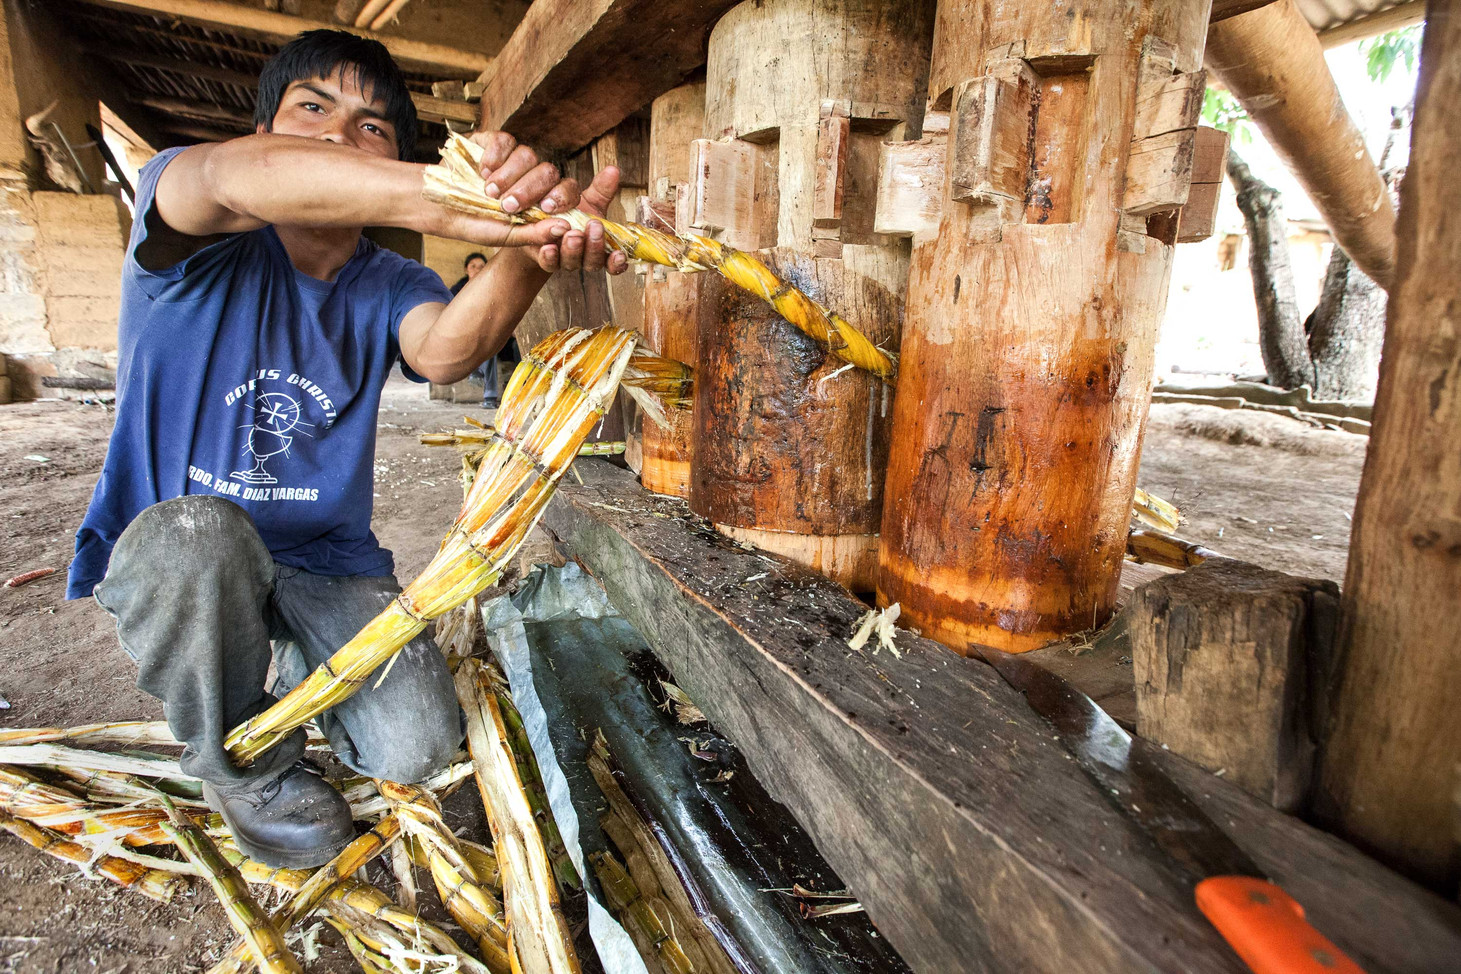 A boy grinds up sugar cane to create juice.